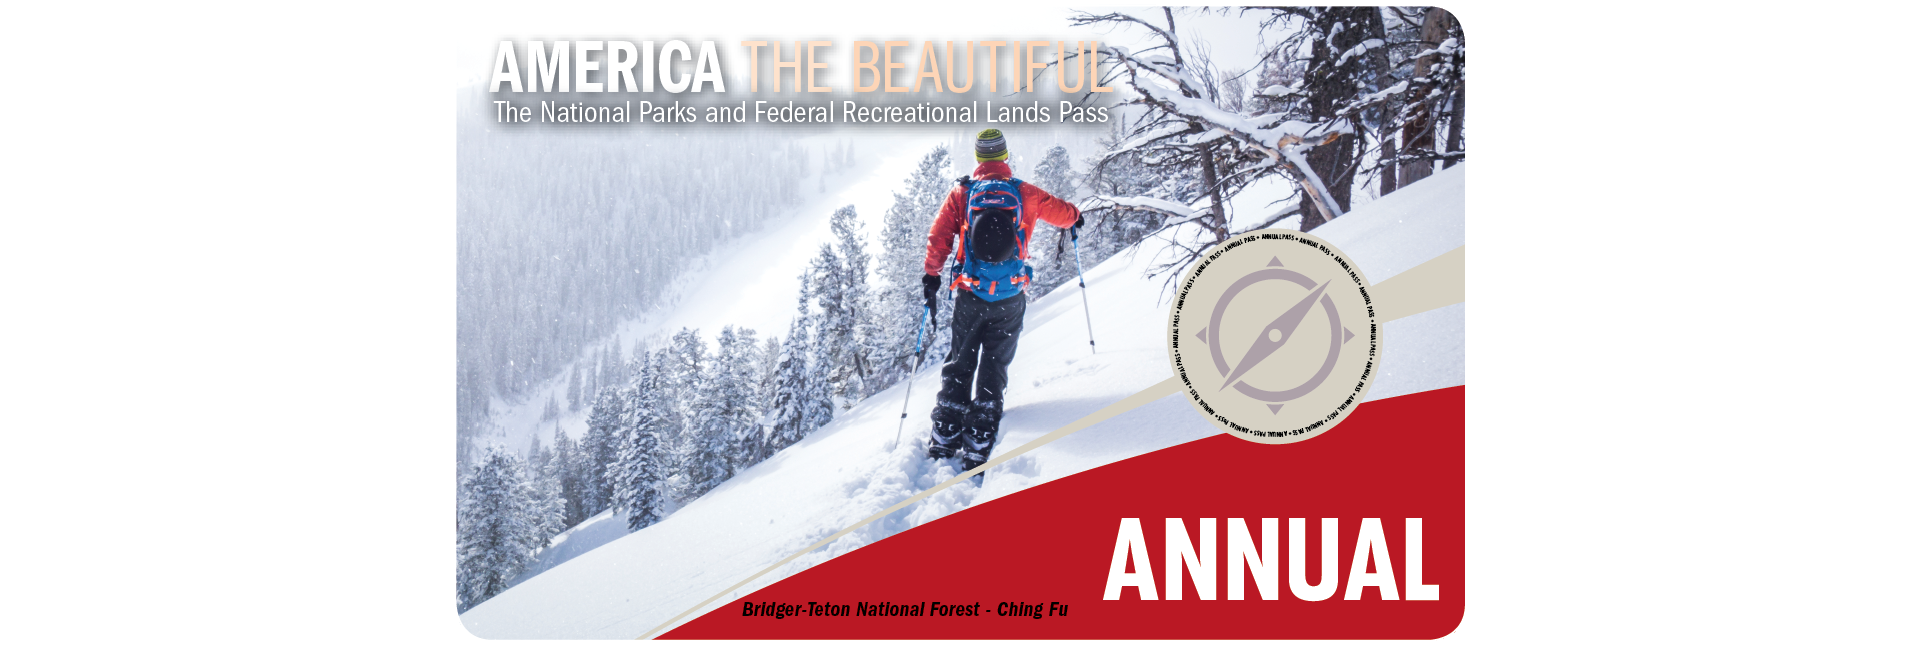 National Parks Pass to the next 10 Boreas Owners!